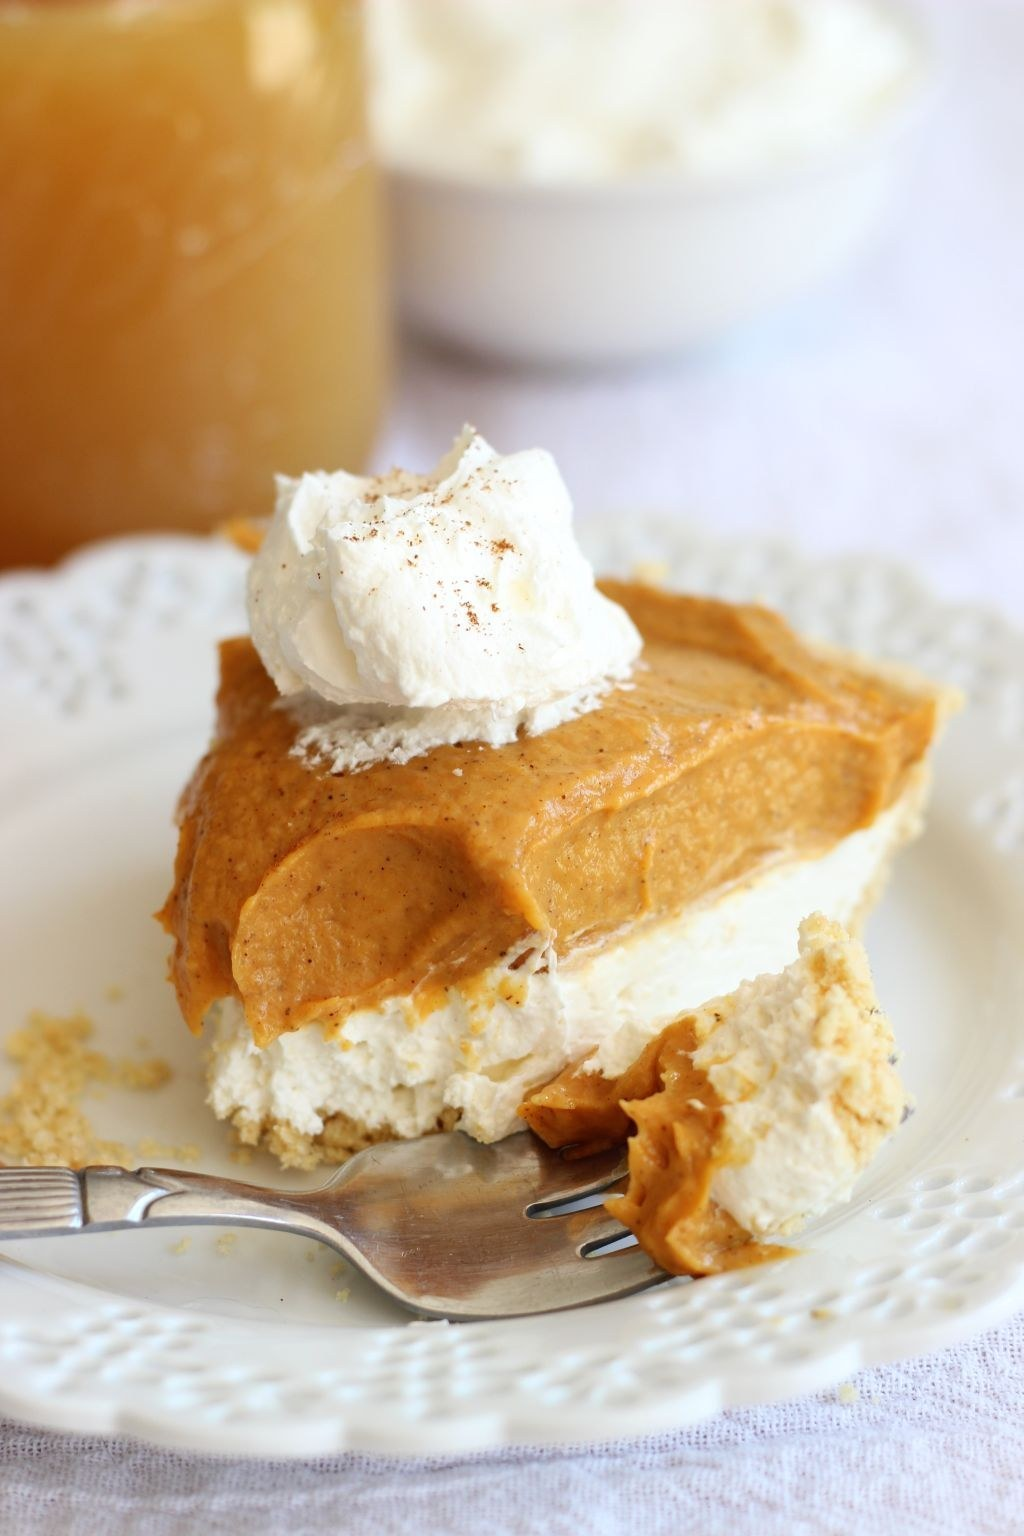 19 Things To Make For Thanksgiving If You Don't Have An Oven